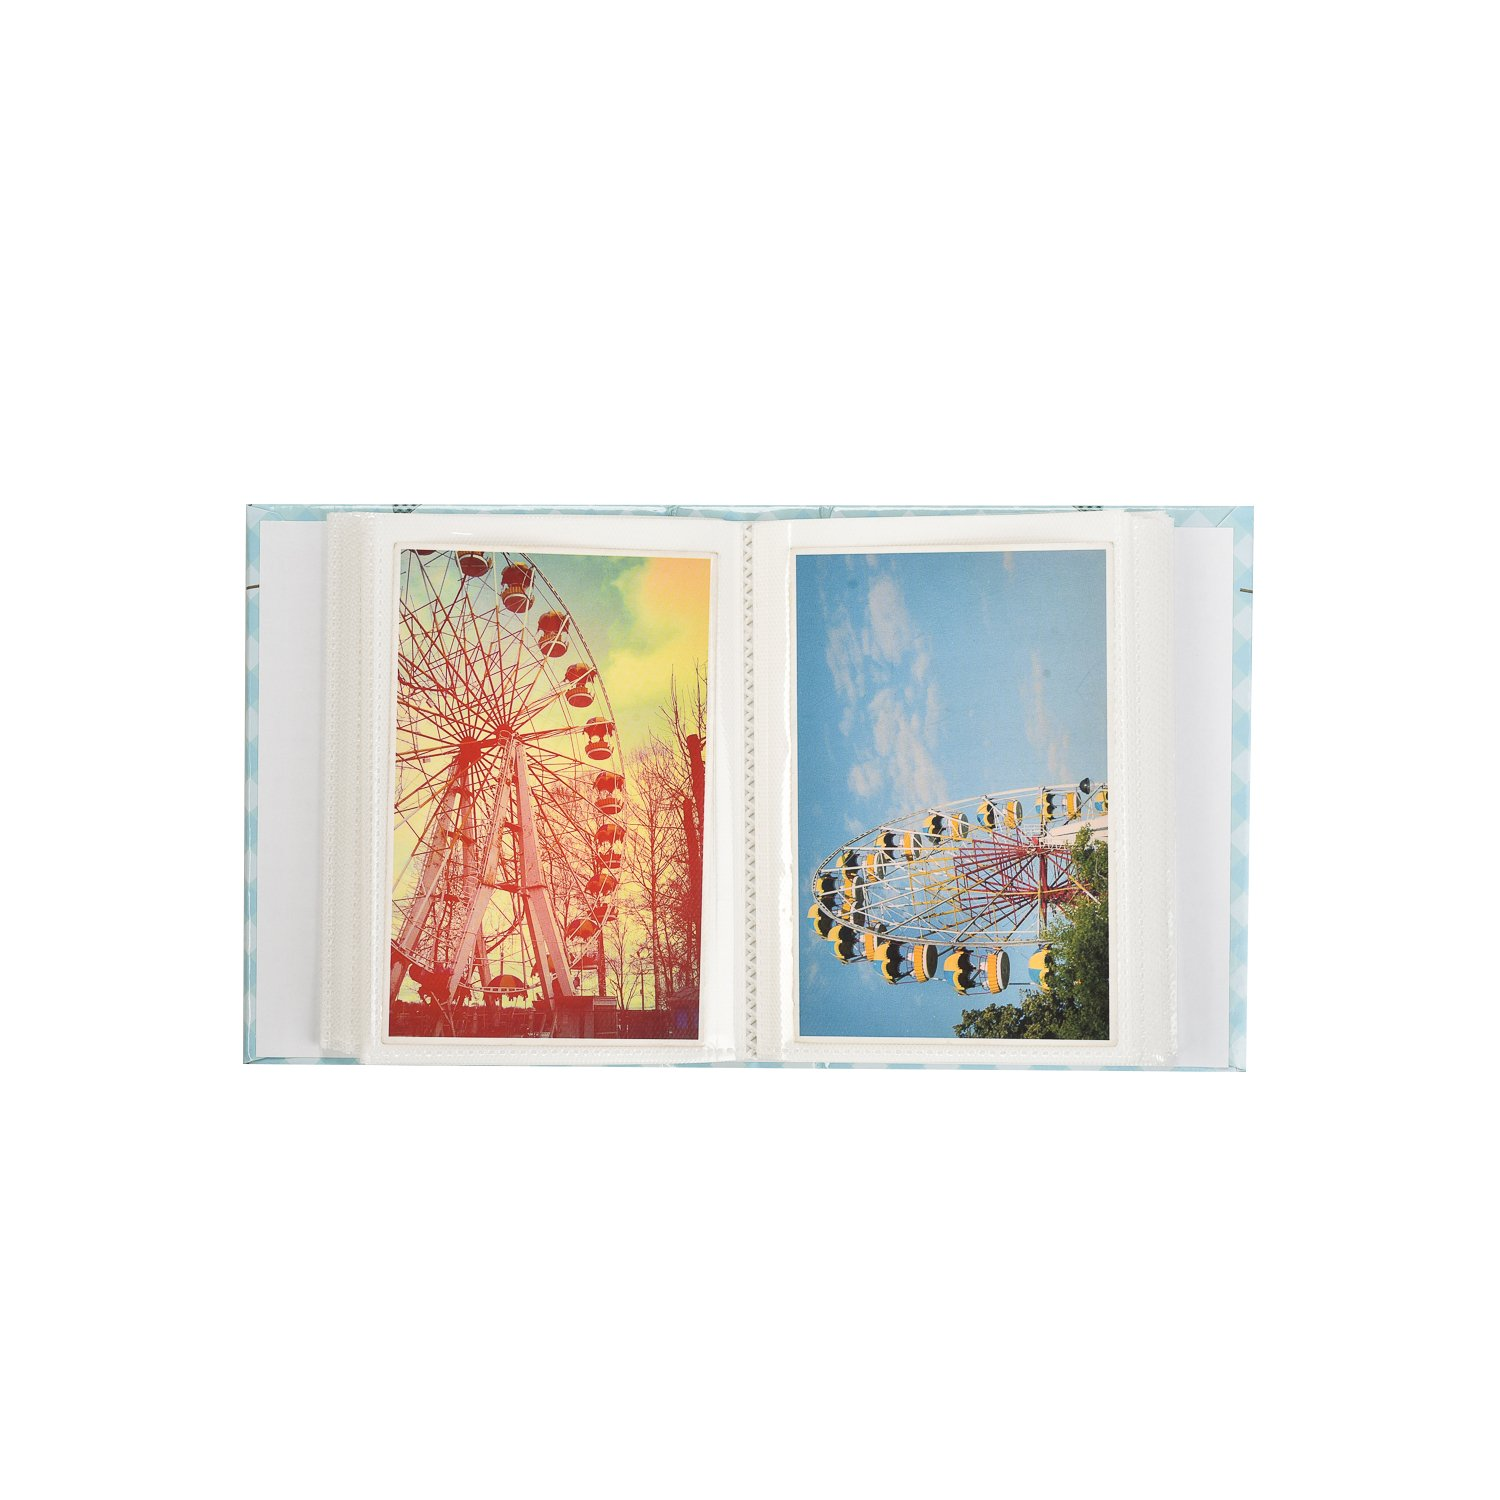 CL-SM100PE Arpan 6x4 Small Slip in Case Photo Album for 100 Photos Various Design /& Colours Perfect Gift for Baby /& Kids